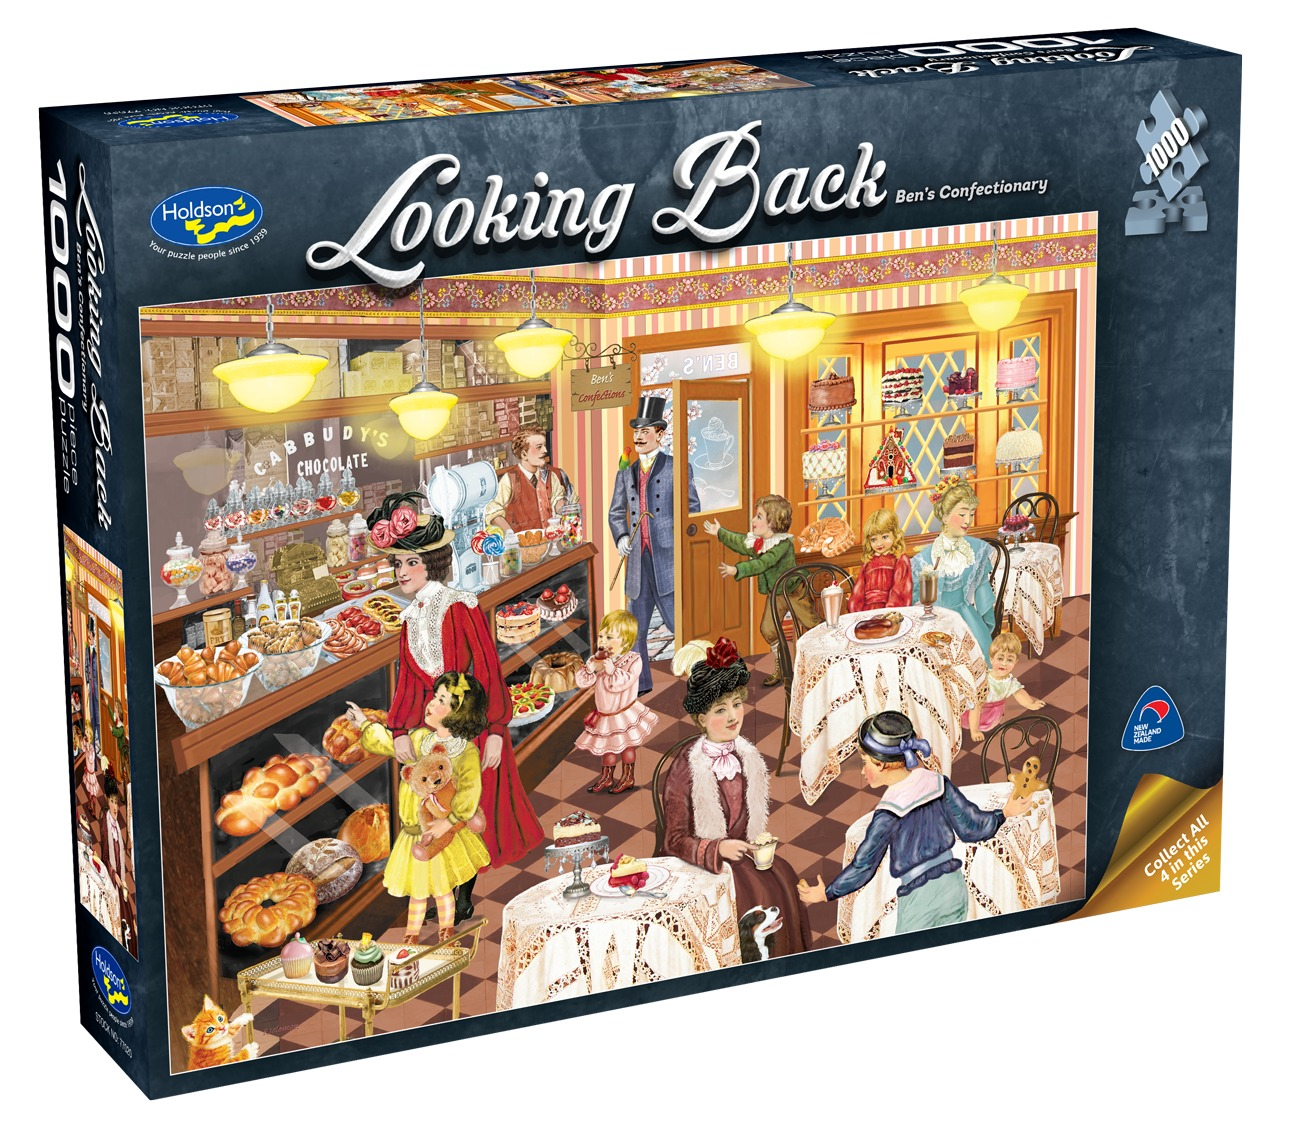 Holdson: 1000 Piece Puzzle - Looking Back (Bens Confectionary) image